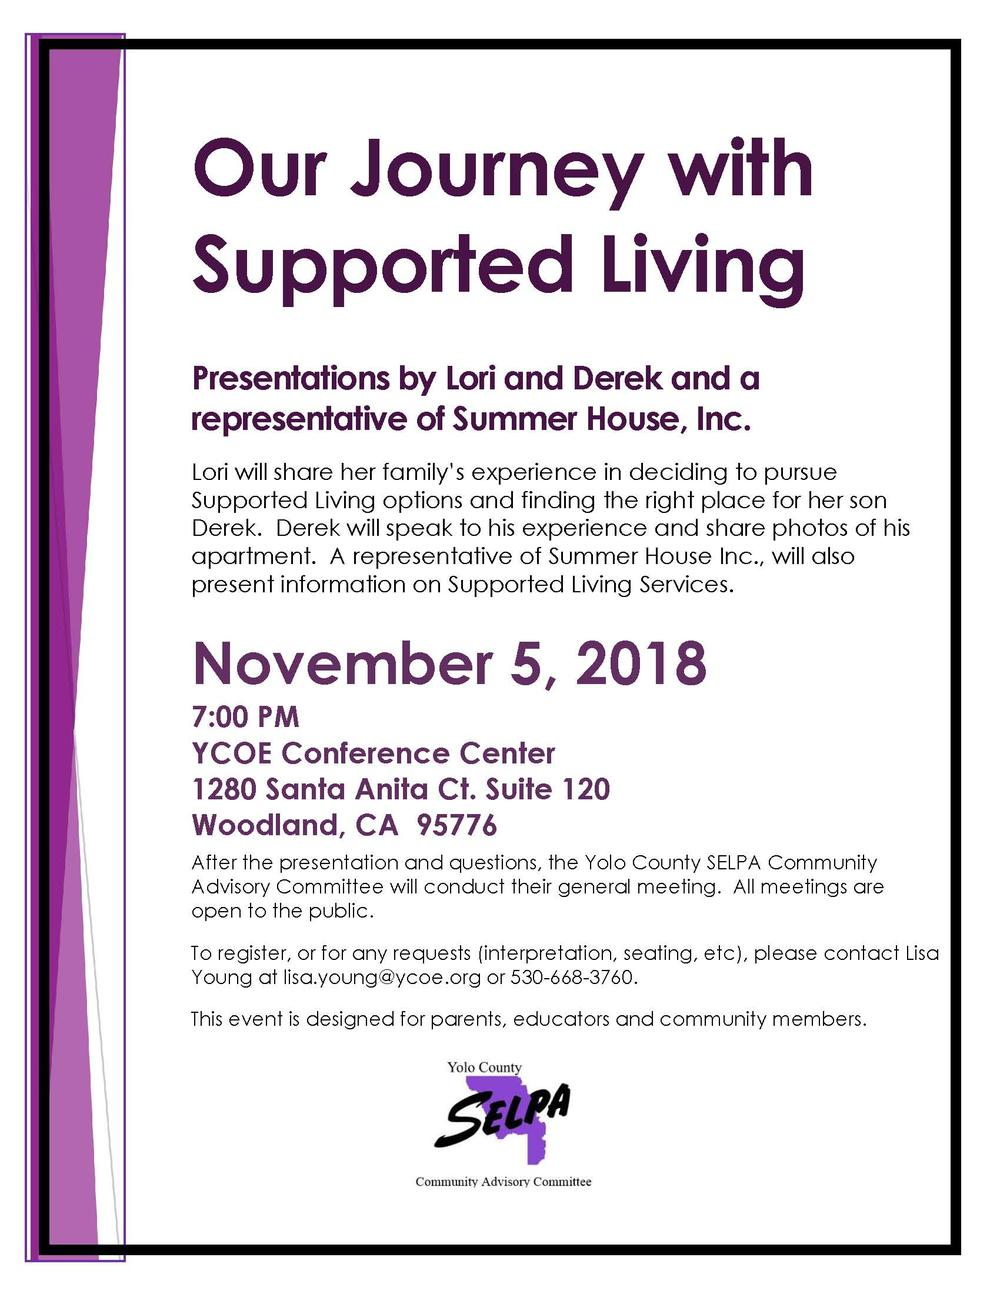 Our Journey with Supported Living Flyer